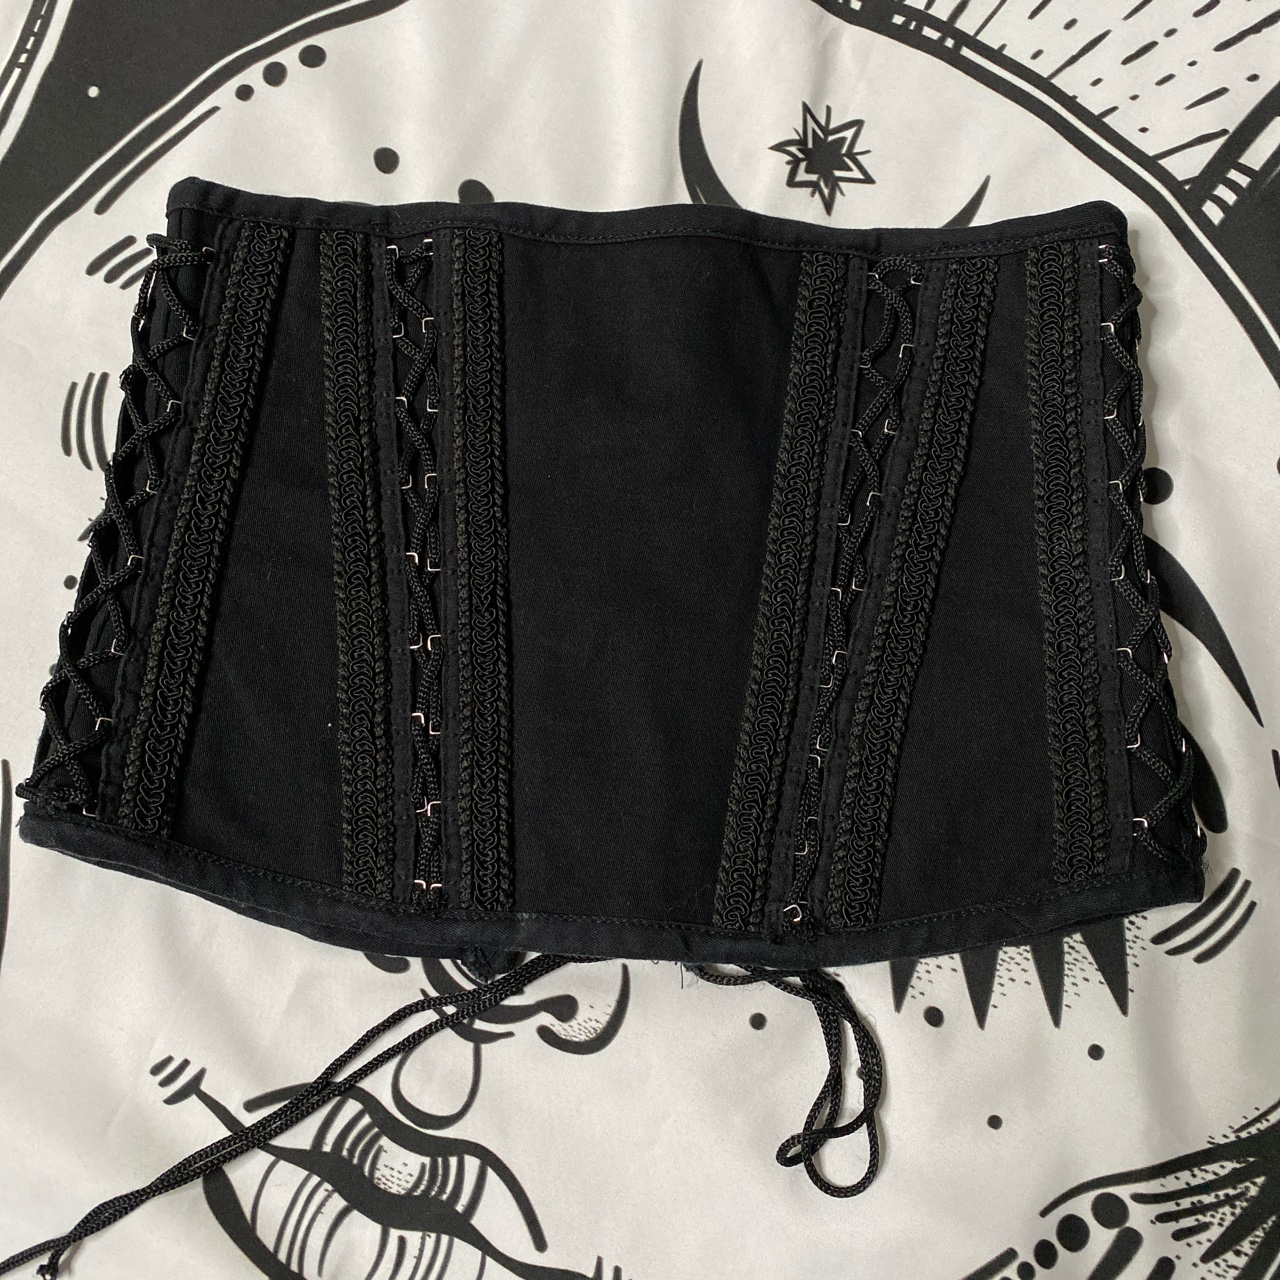 Product Image 1 - This accessory corset belt is